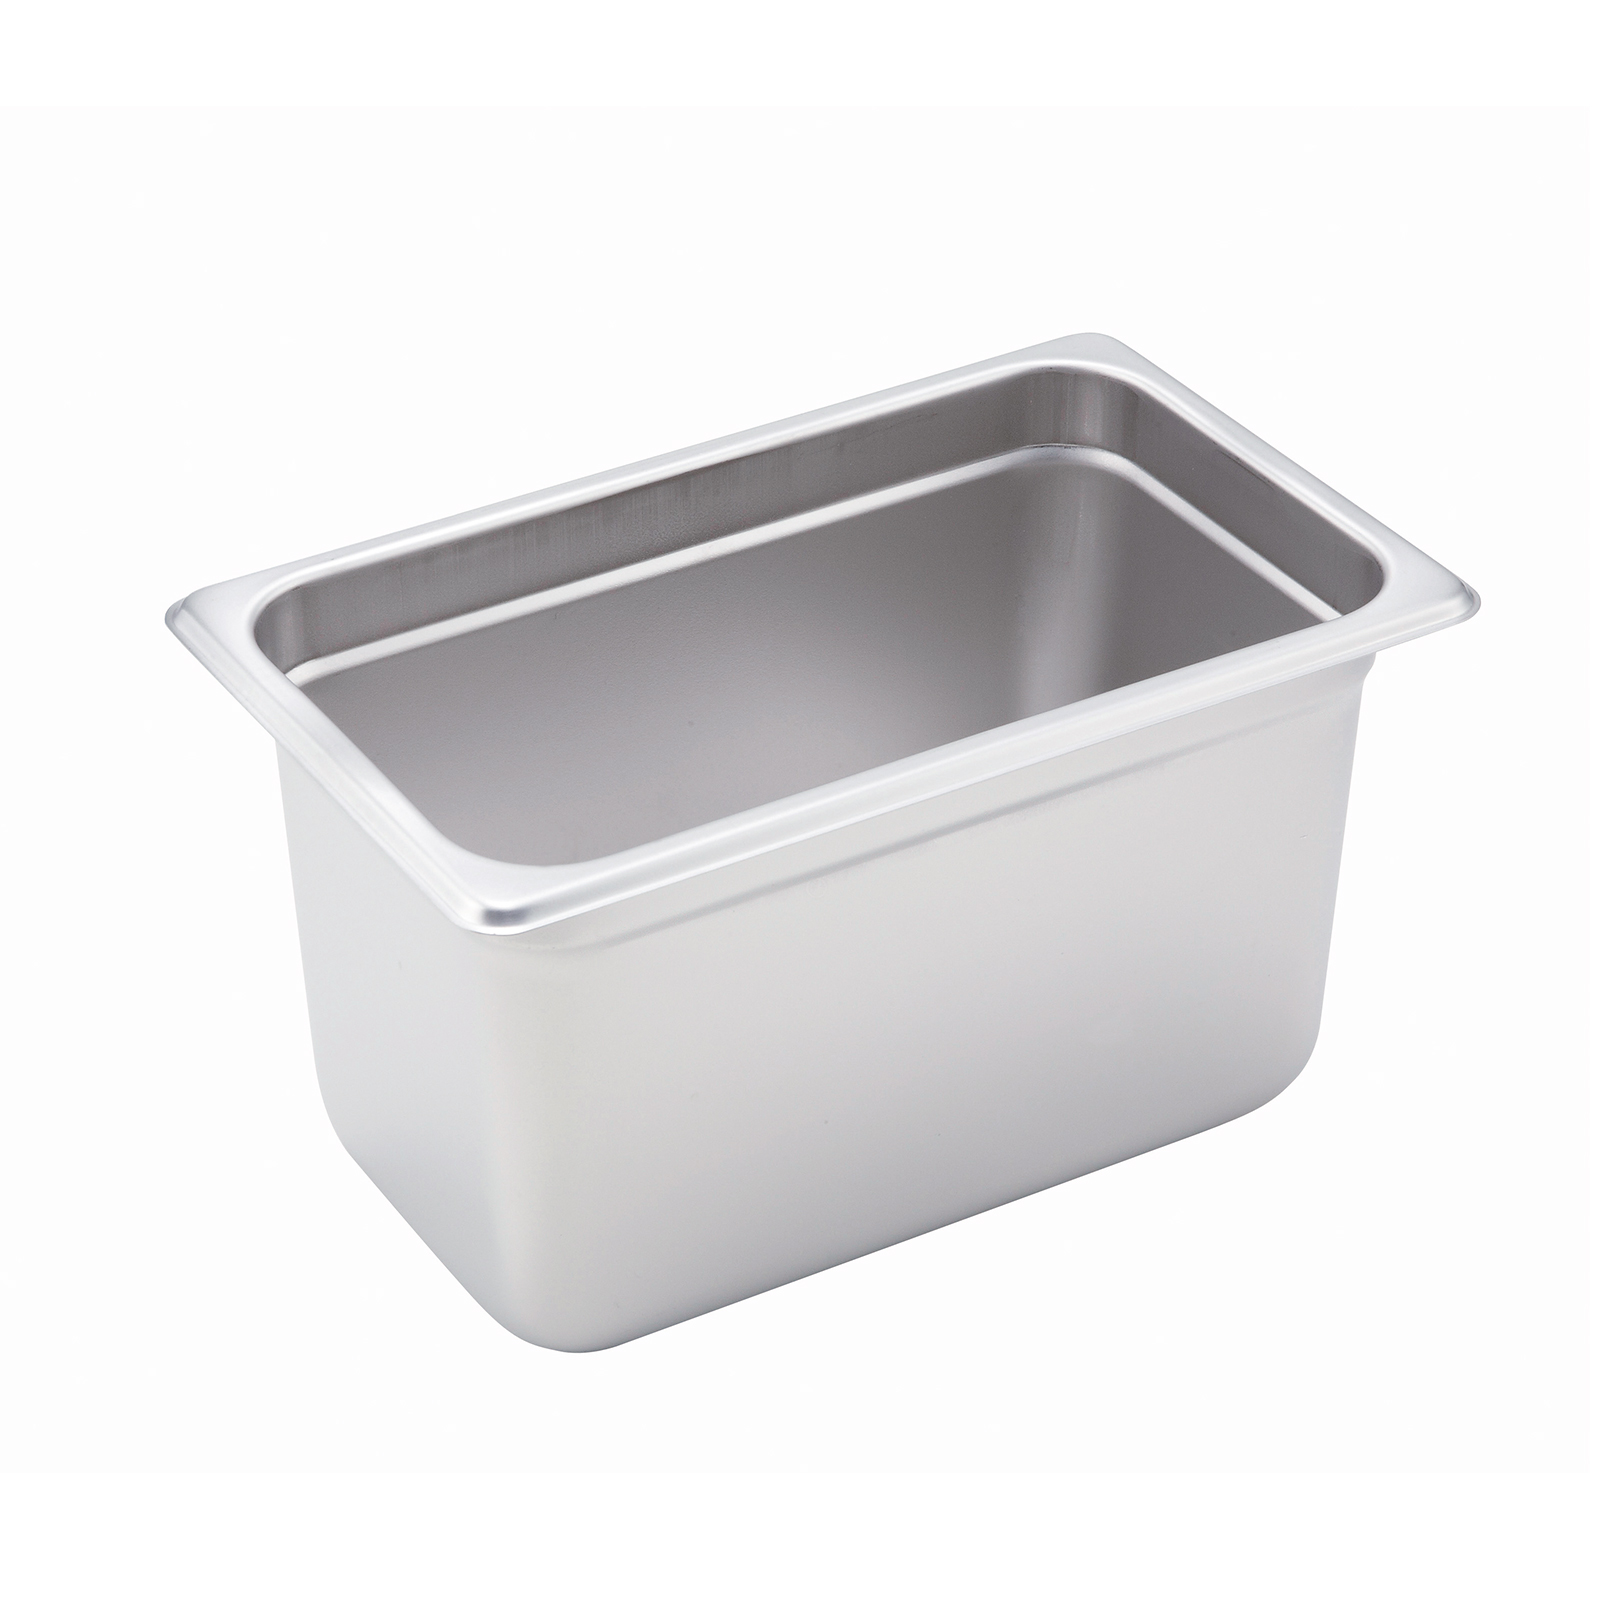 Winco SPJH-406 steam table pan, stainless steel